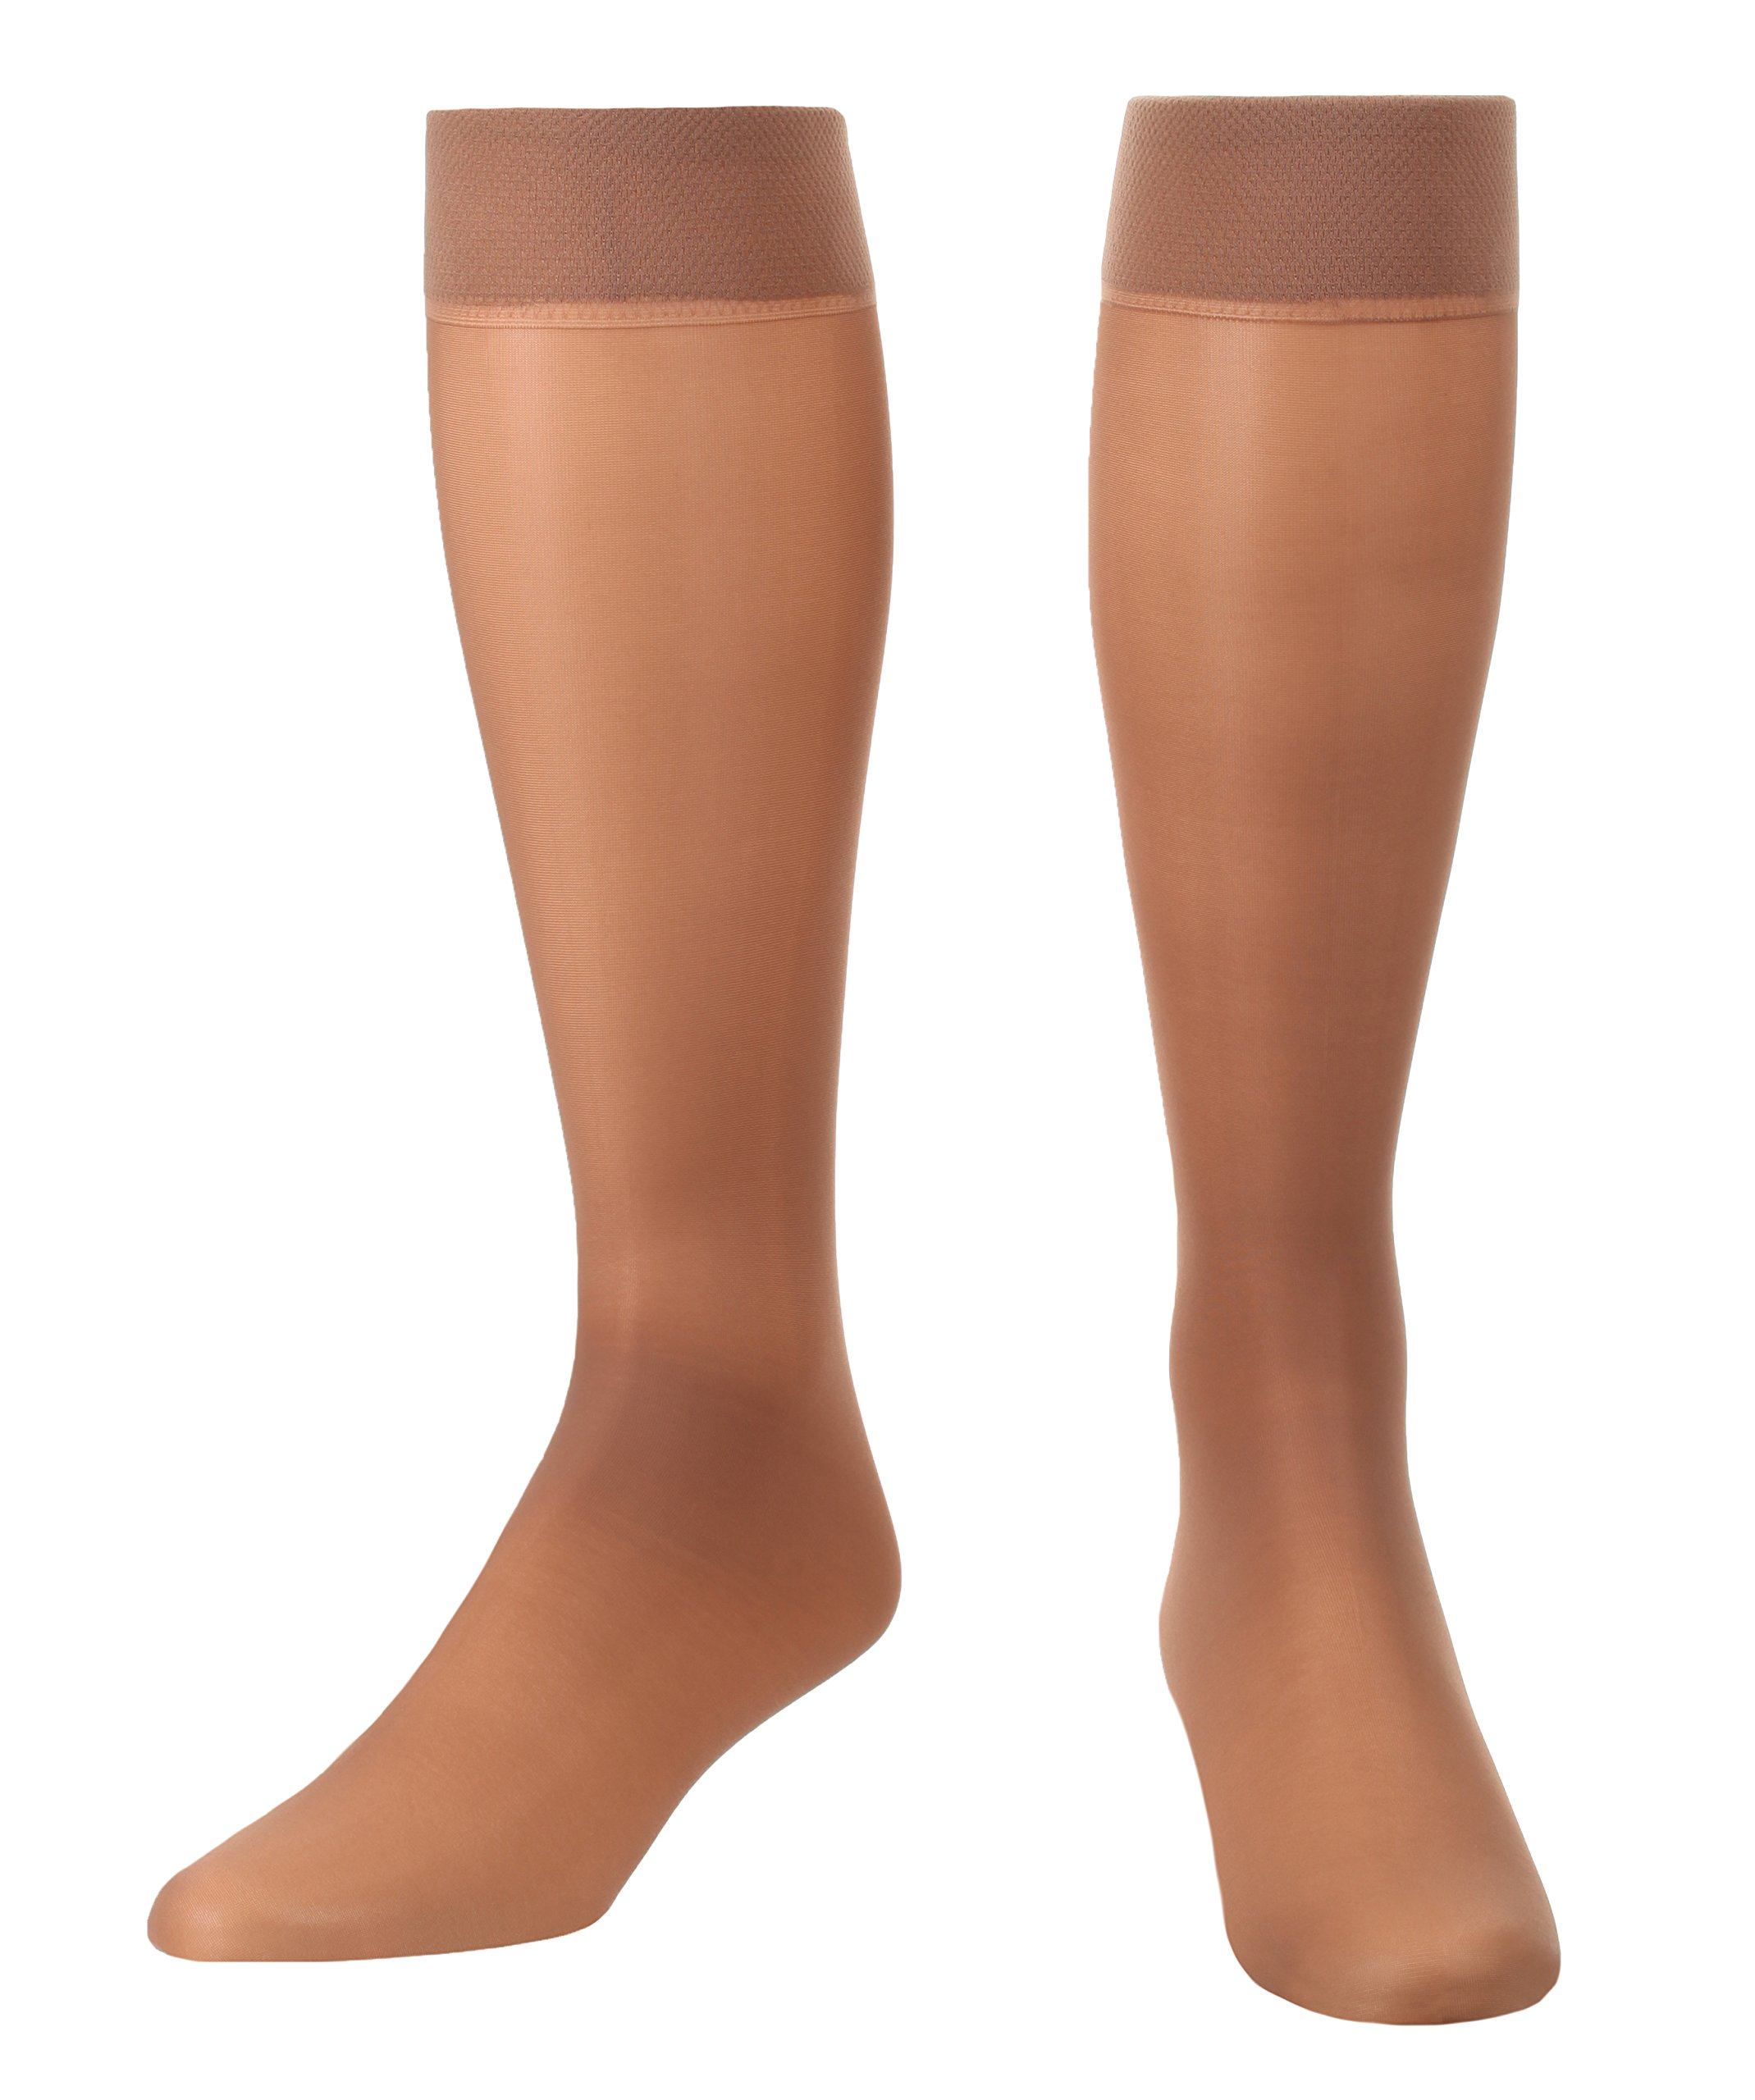 c6ee086ef4a Sheer Light Support Knee Hi s graduated compression stockings 8-15mmHg 1  Pair- Absolute Support